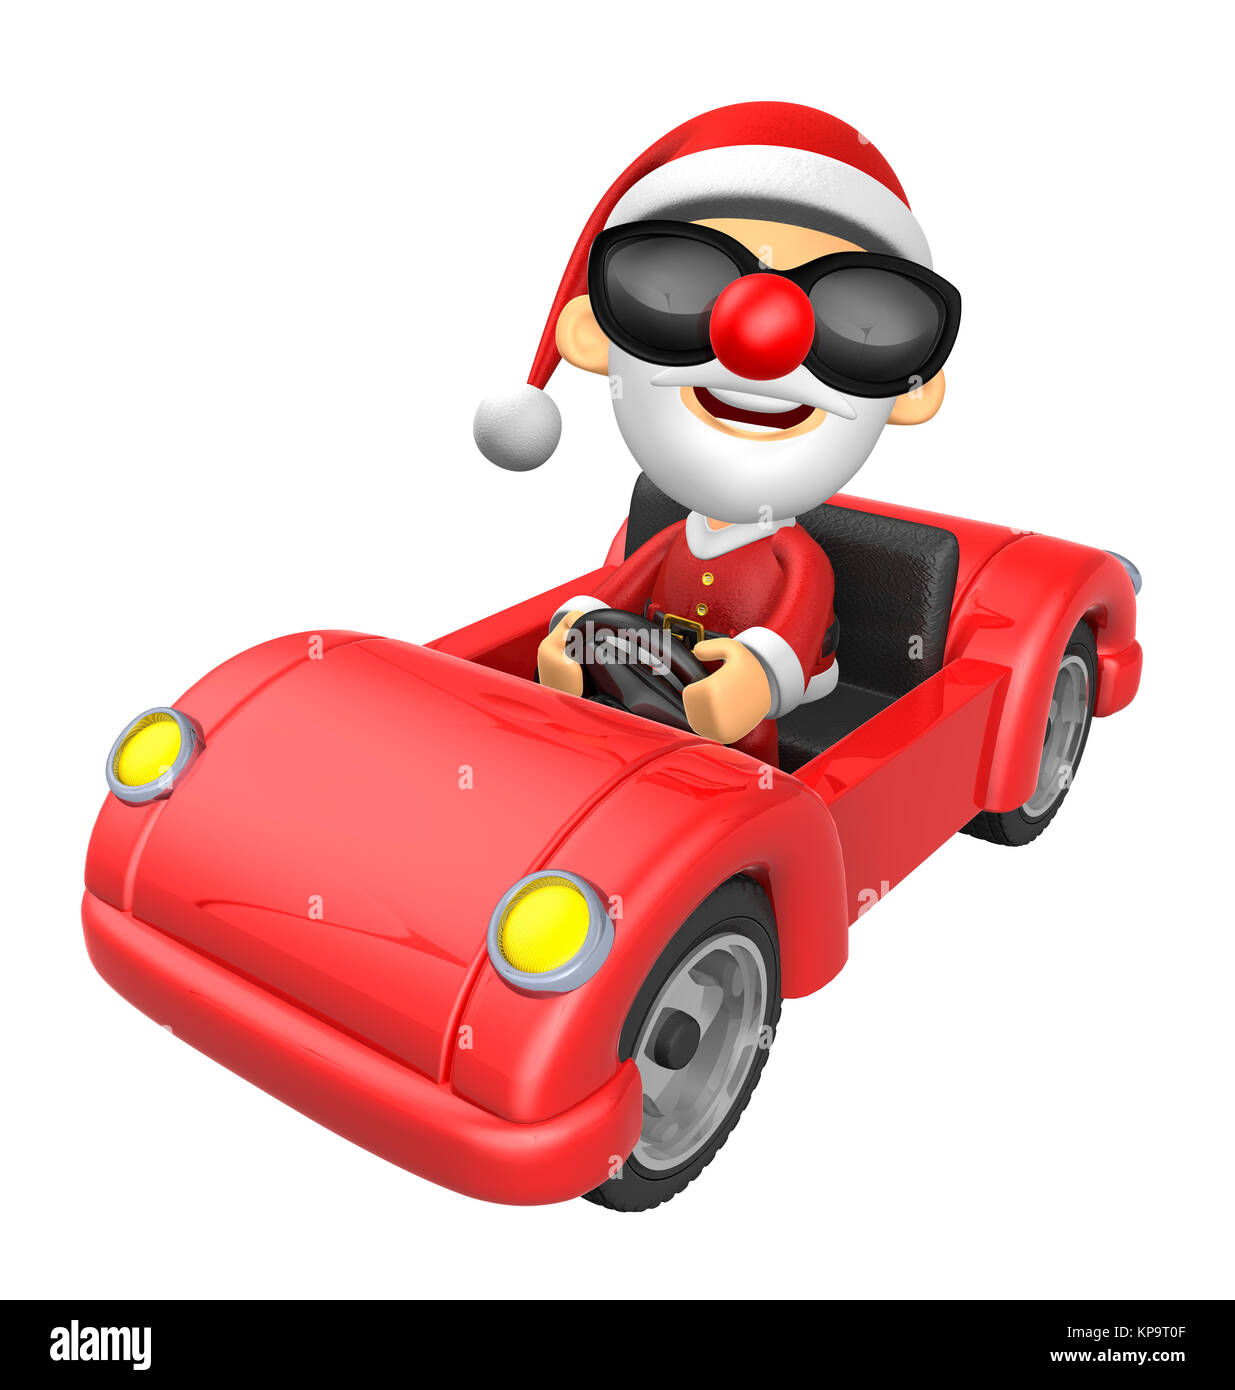 Christmas Sports Car.Driving A Red Sports Car In 3d Santa Character 3d Christmas